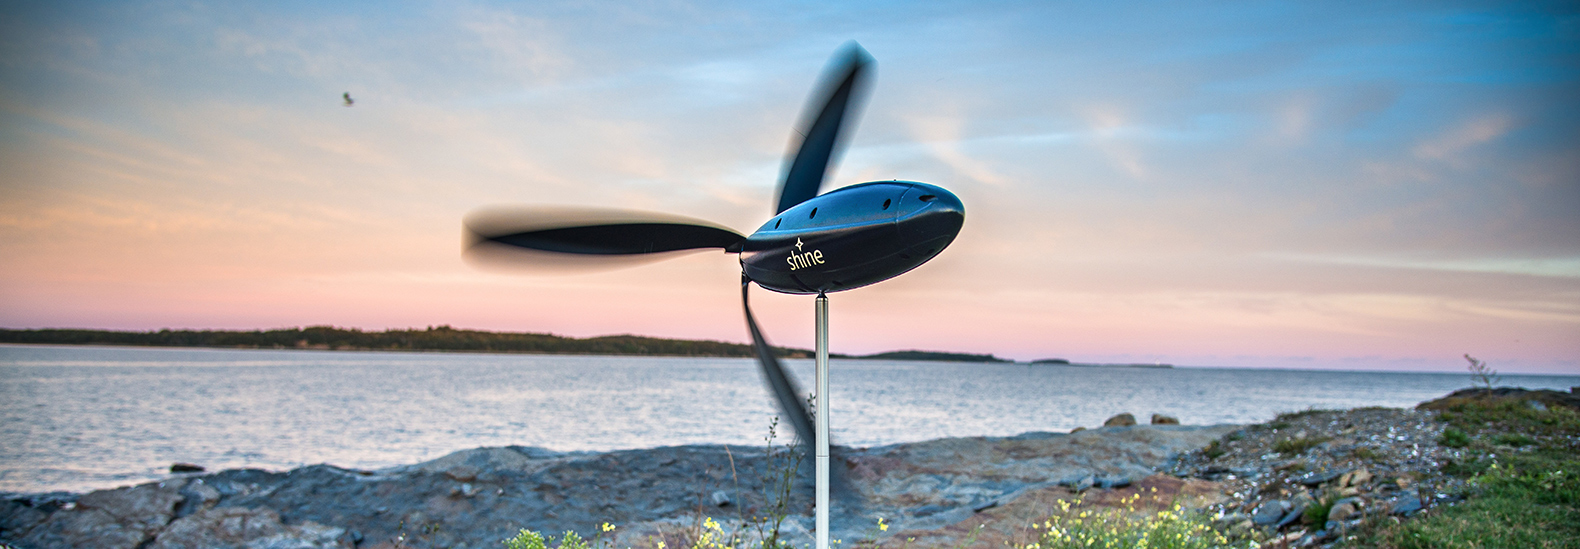 Shine Turbine is a wind-powered portable device charger | Tech News